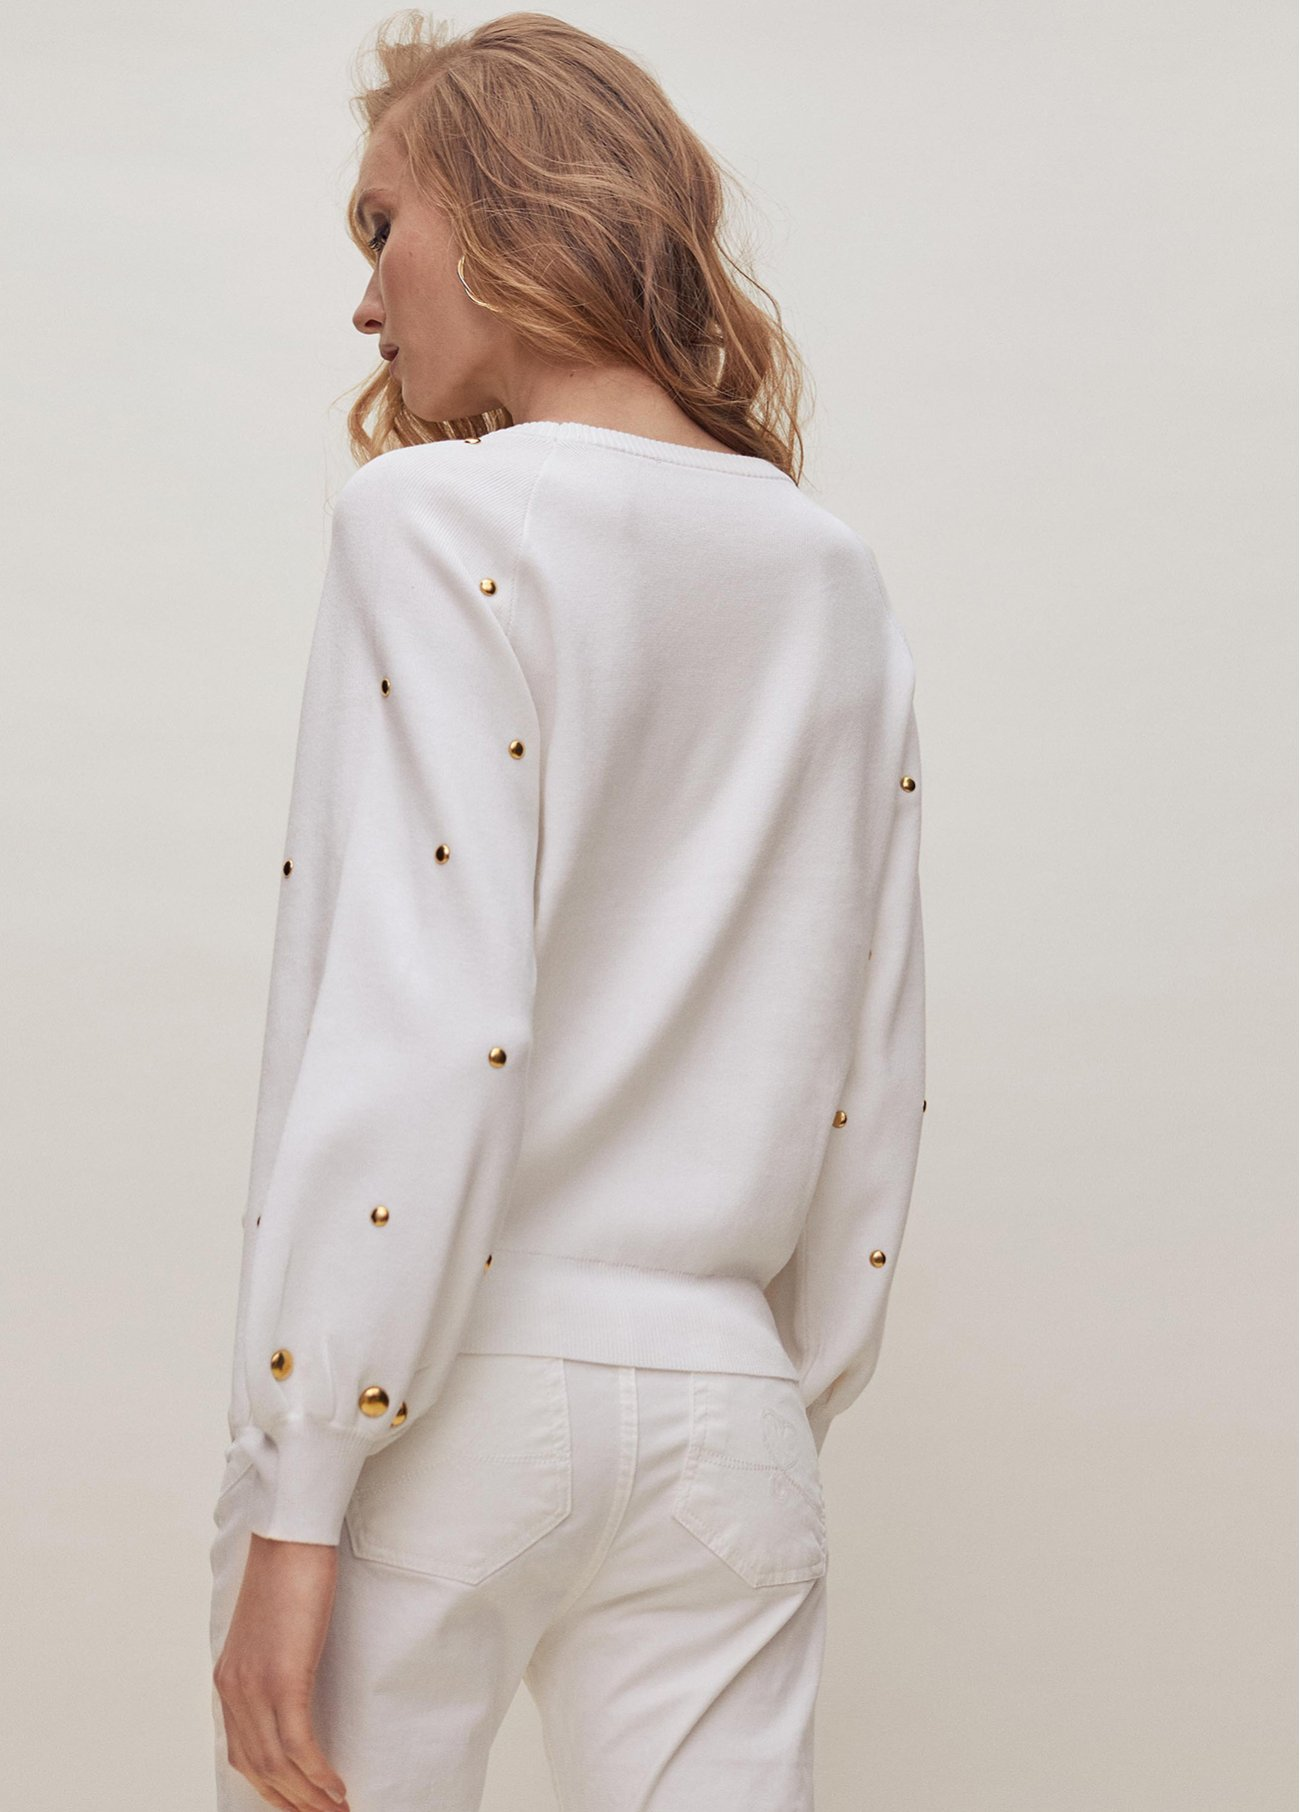 Pull over with boat neck and studs on sl